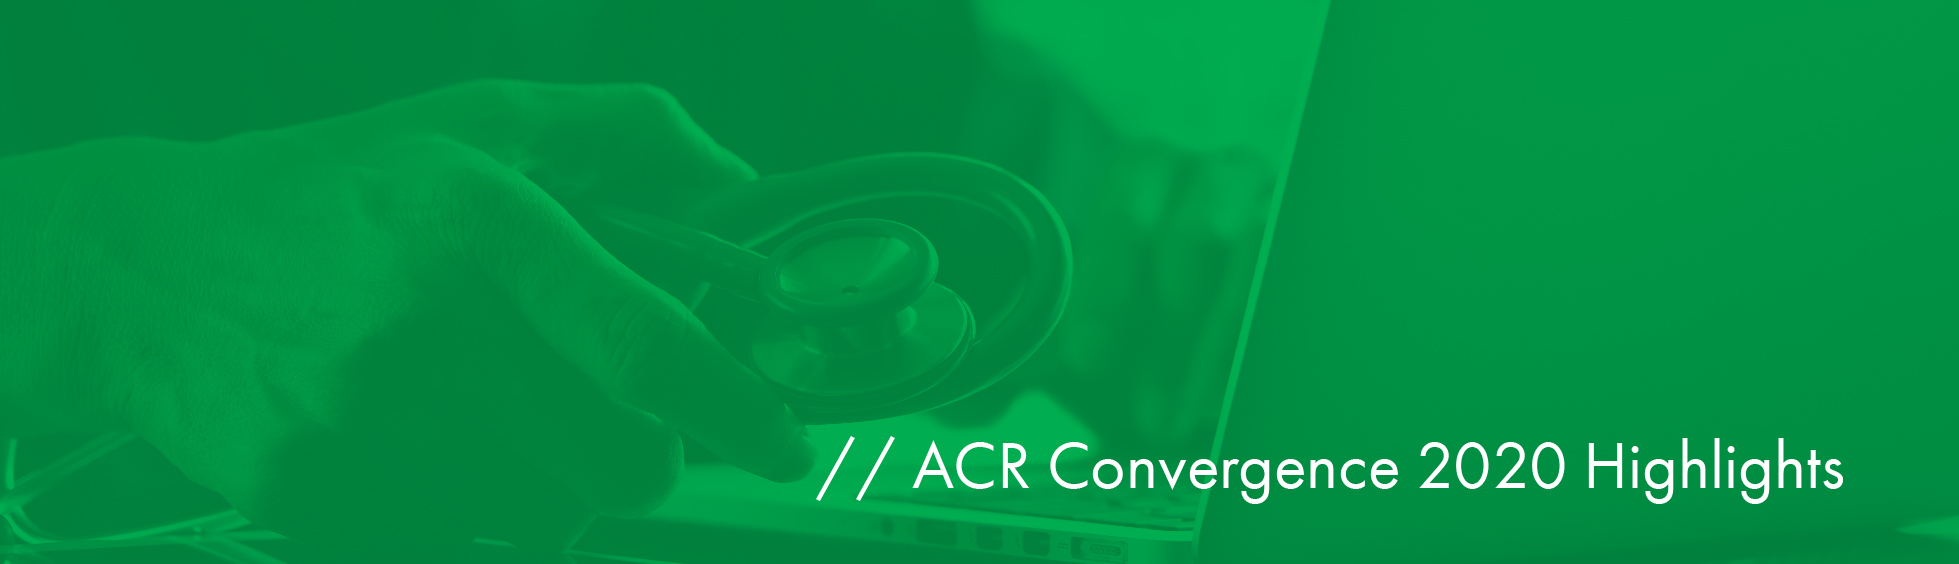 Highlights from ACR 2020: The Future of Osteoarthritis Treatment & Research